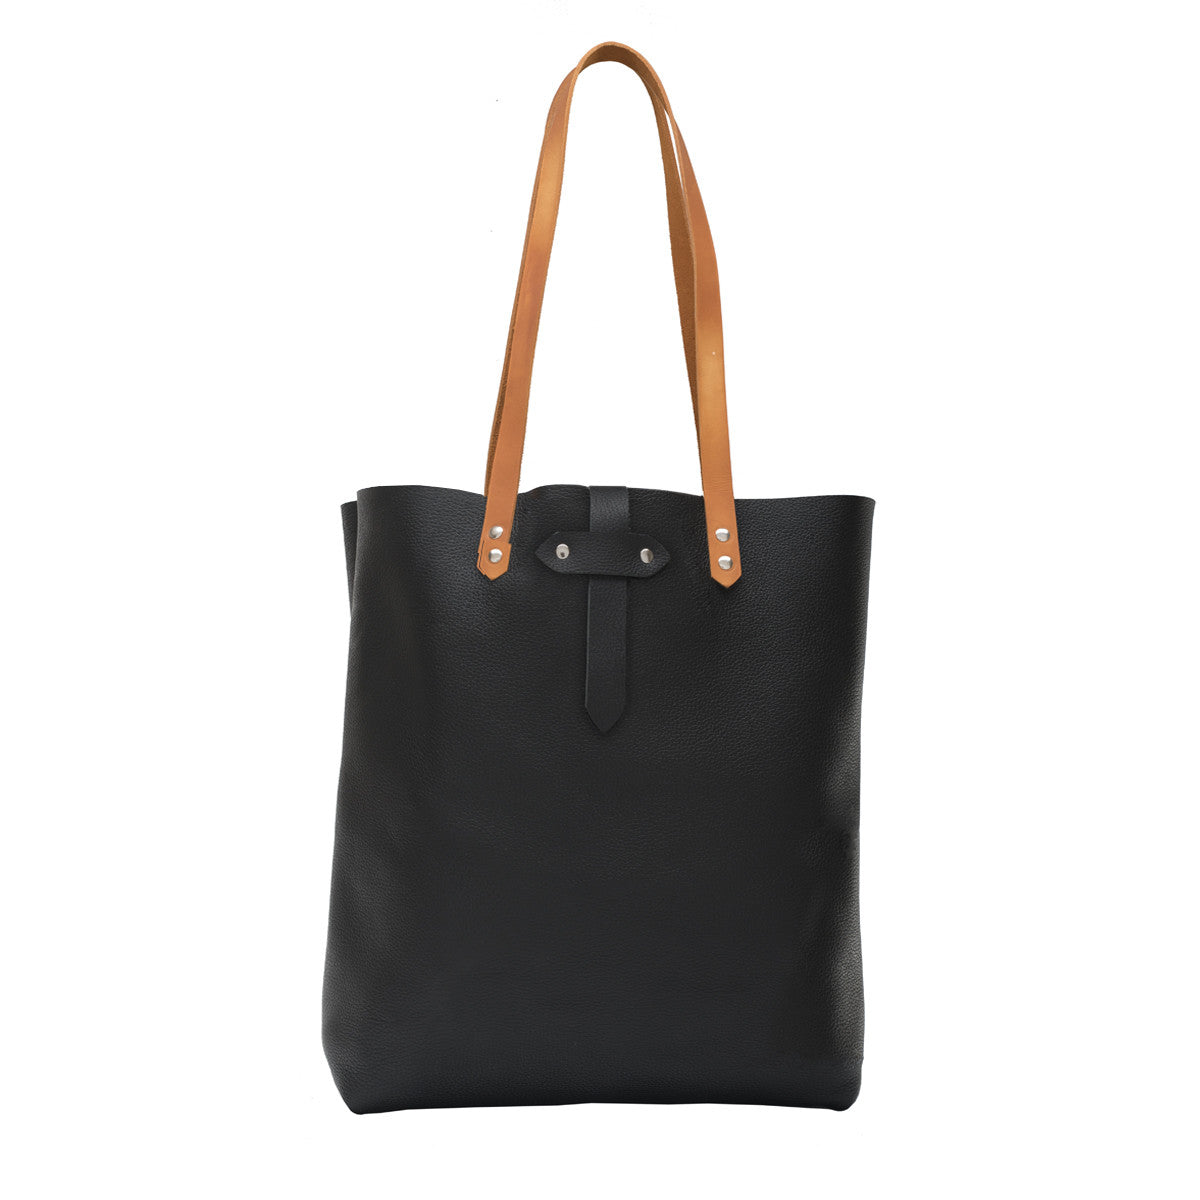 039239eb54a Black Leather Tote Bag